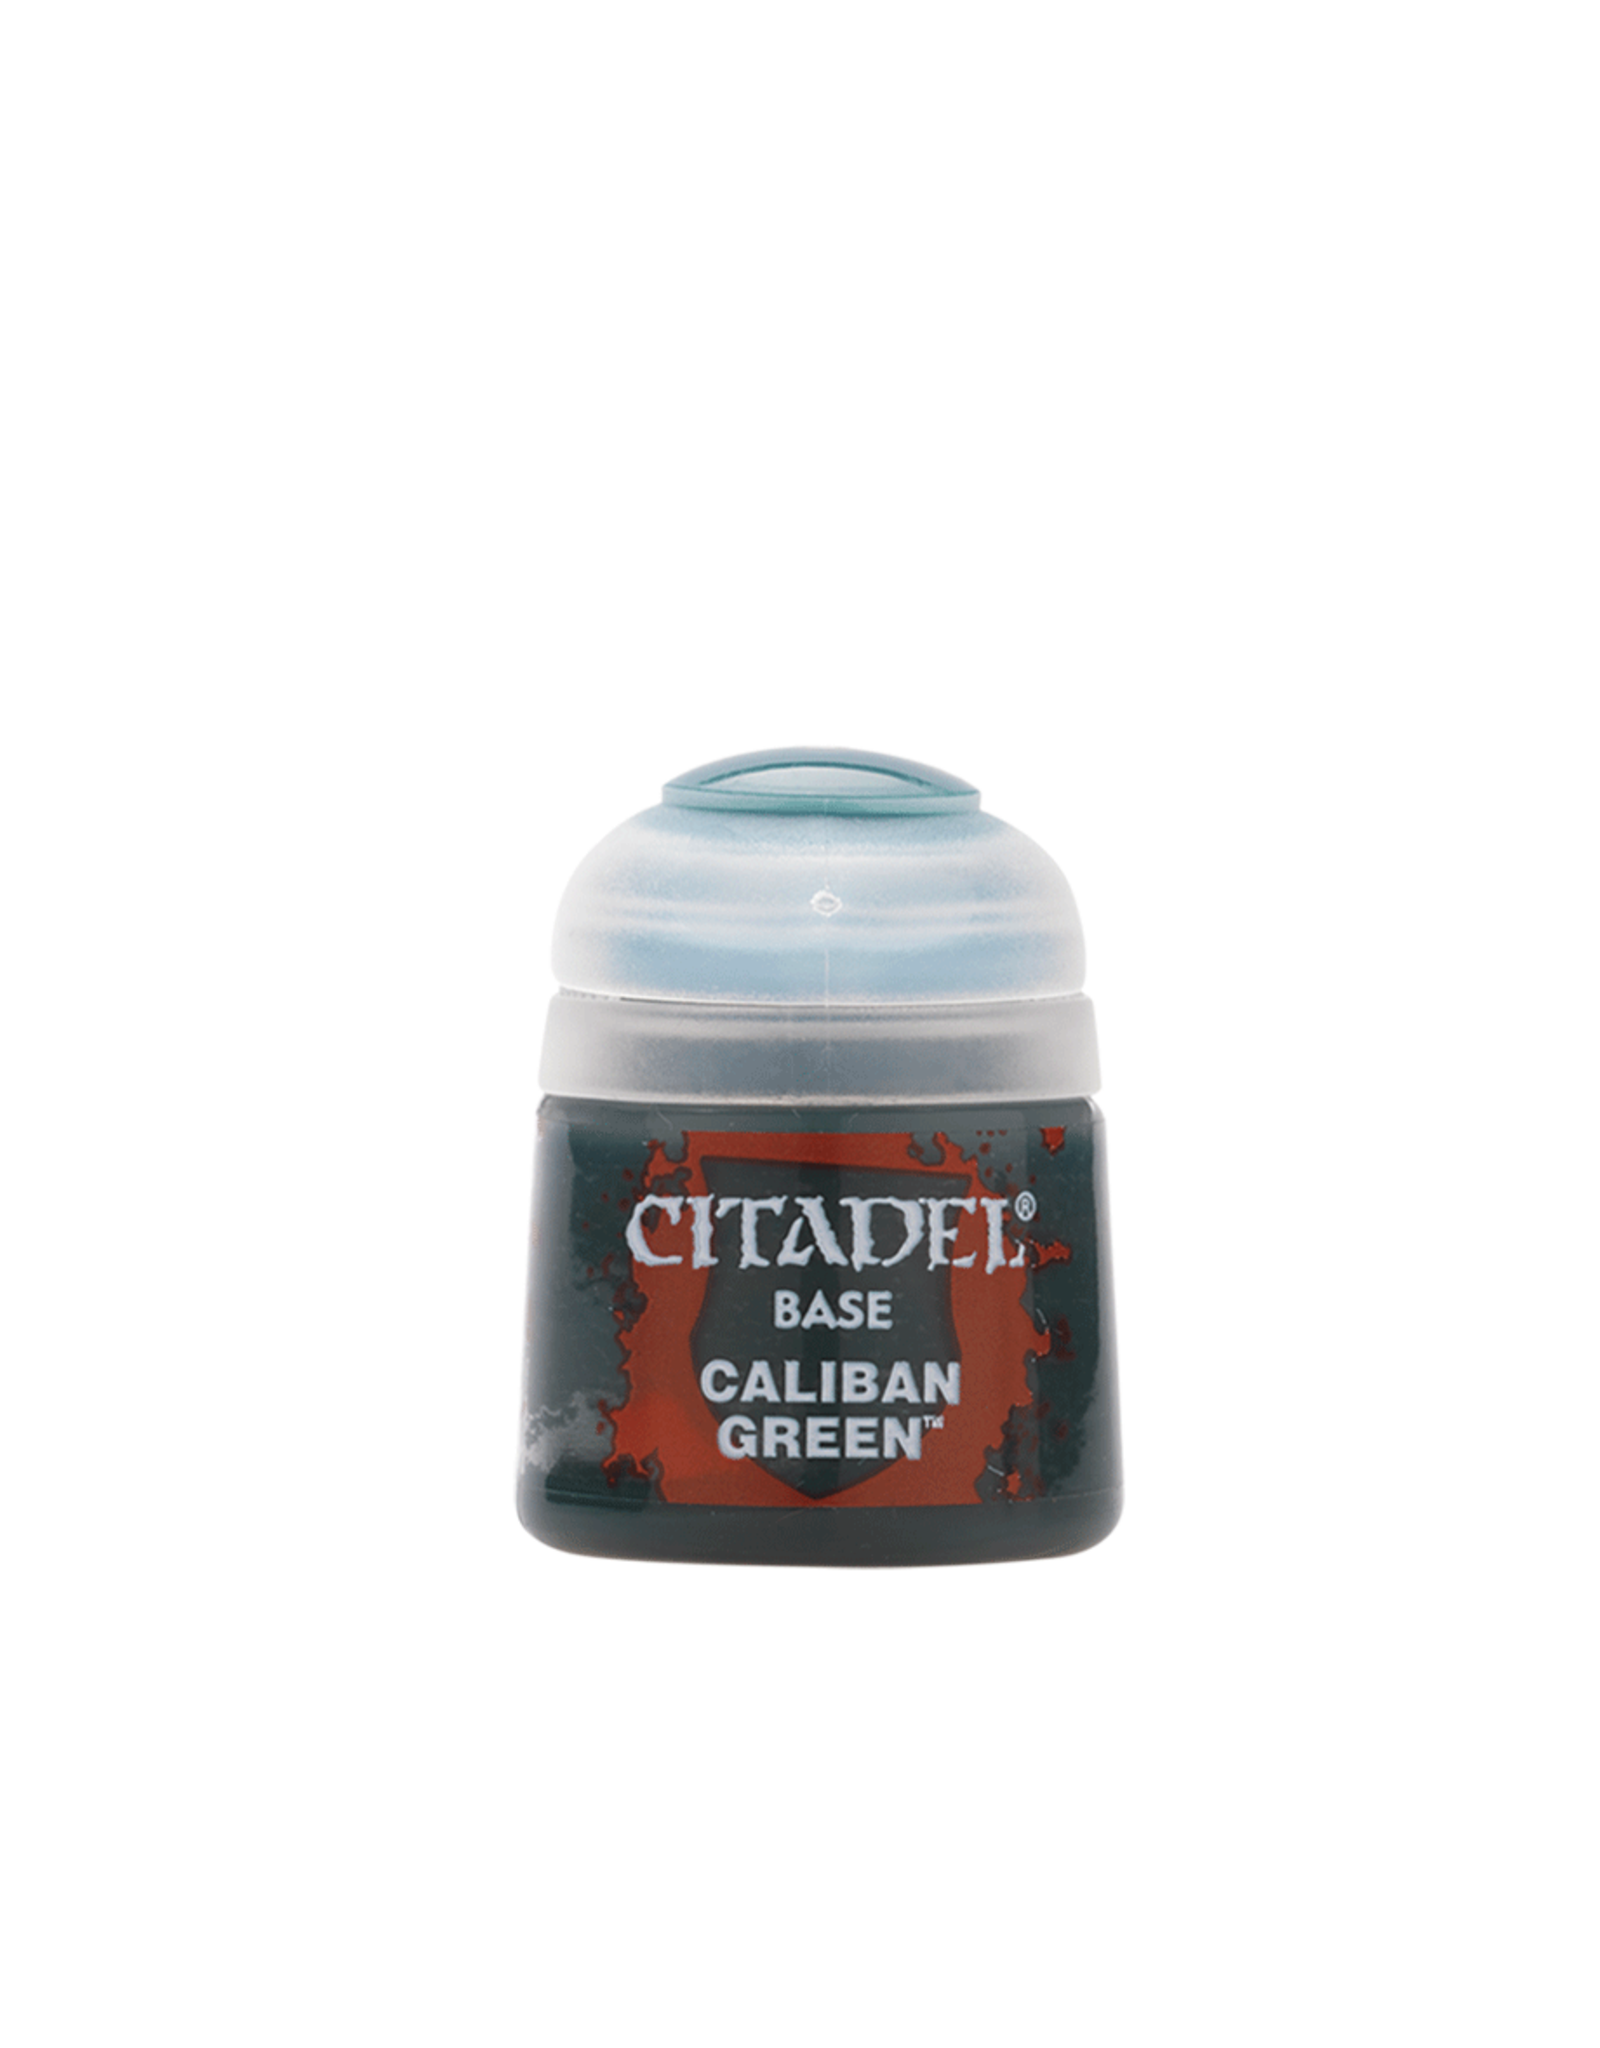 Citadel Caliban Green